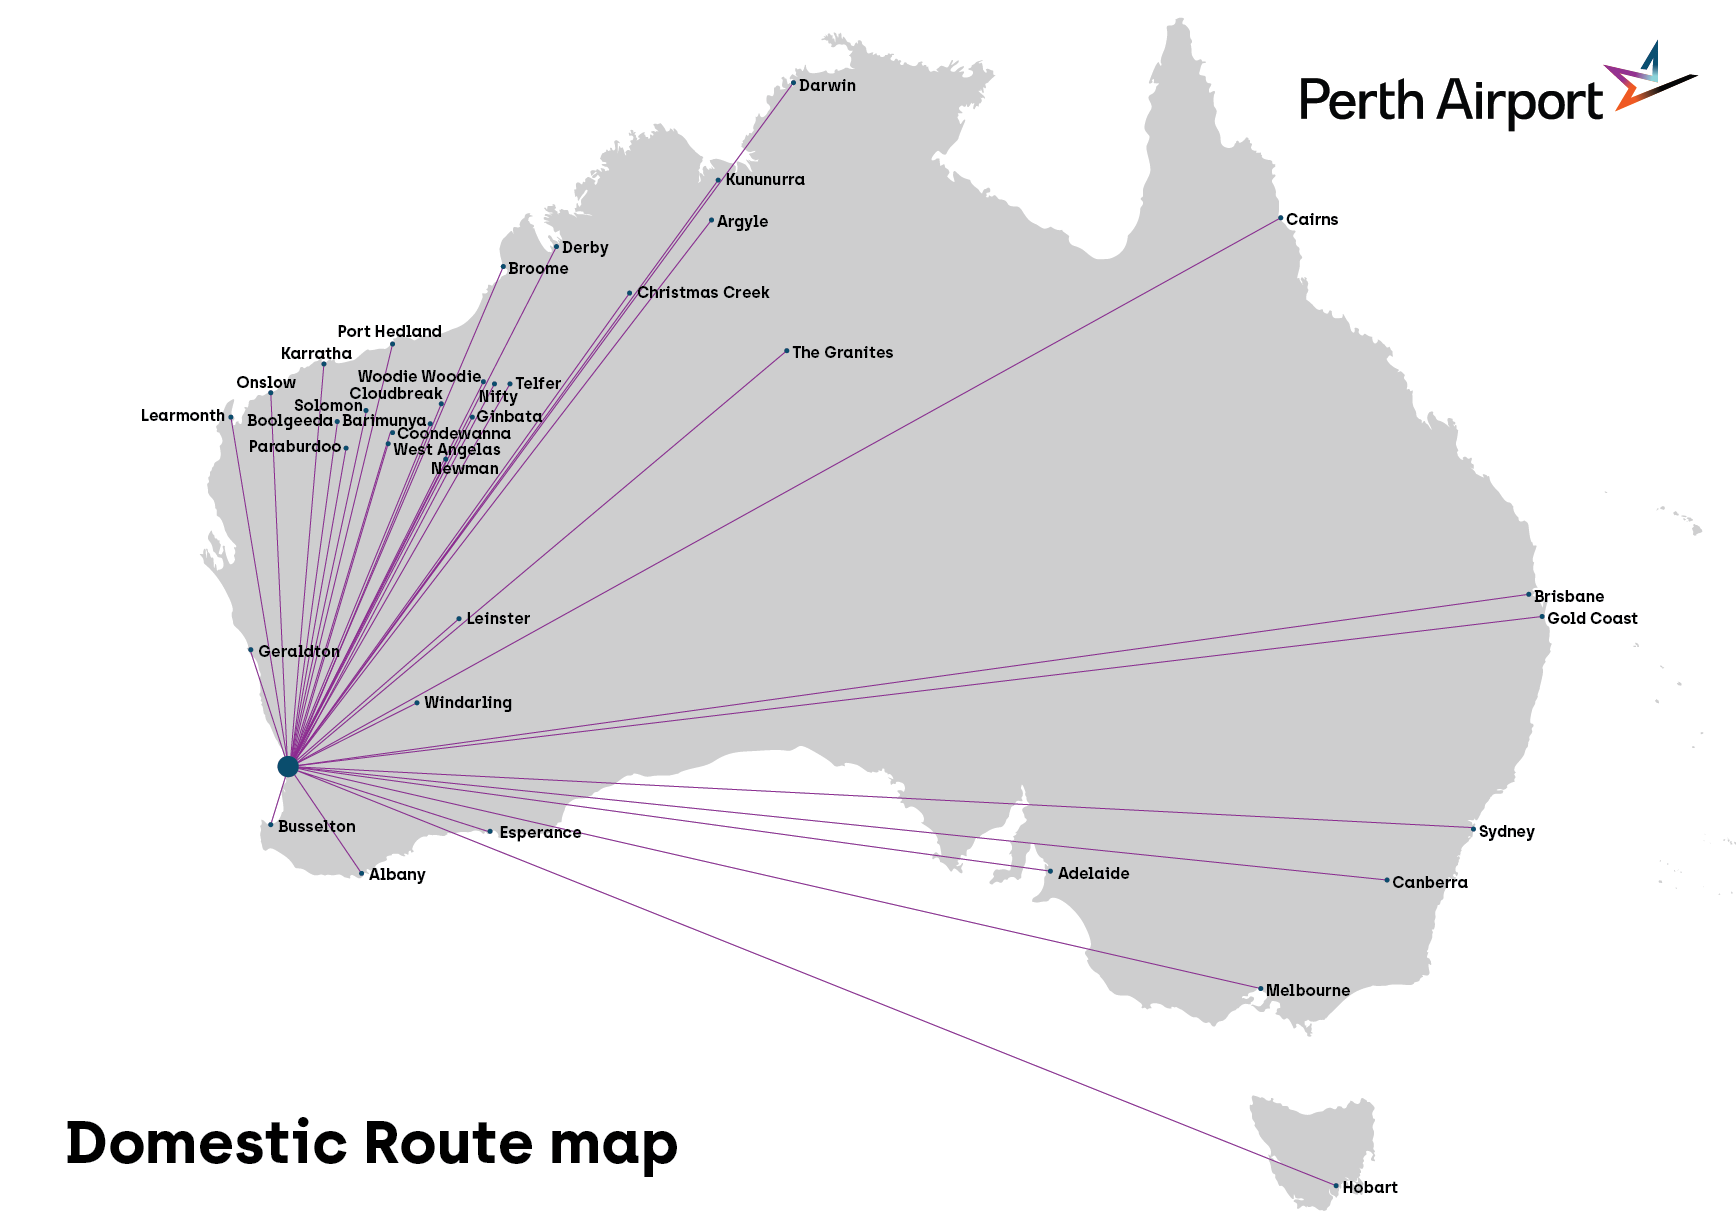 Florida Airports Map.Perth Airport Passengers Route Maps